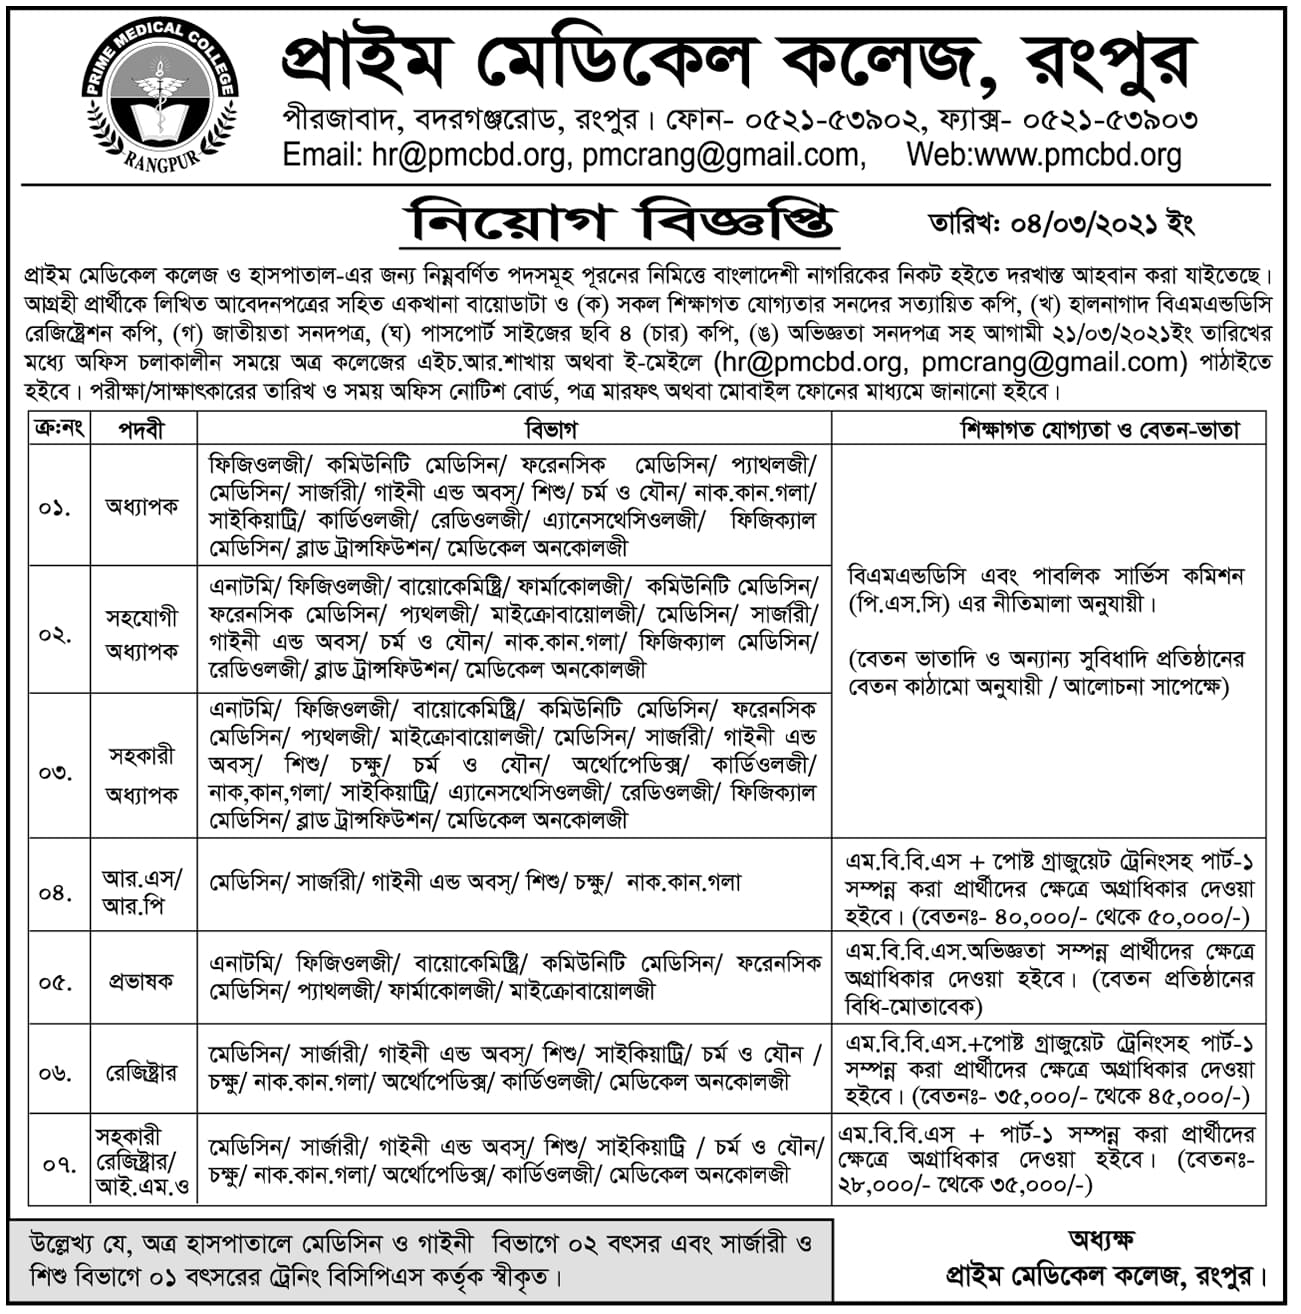 Prime Medical College Job Circular 2021